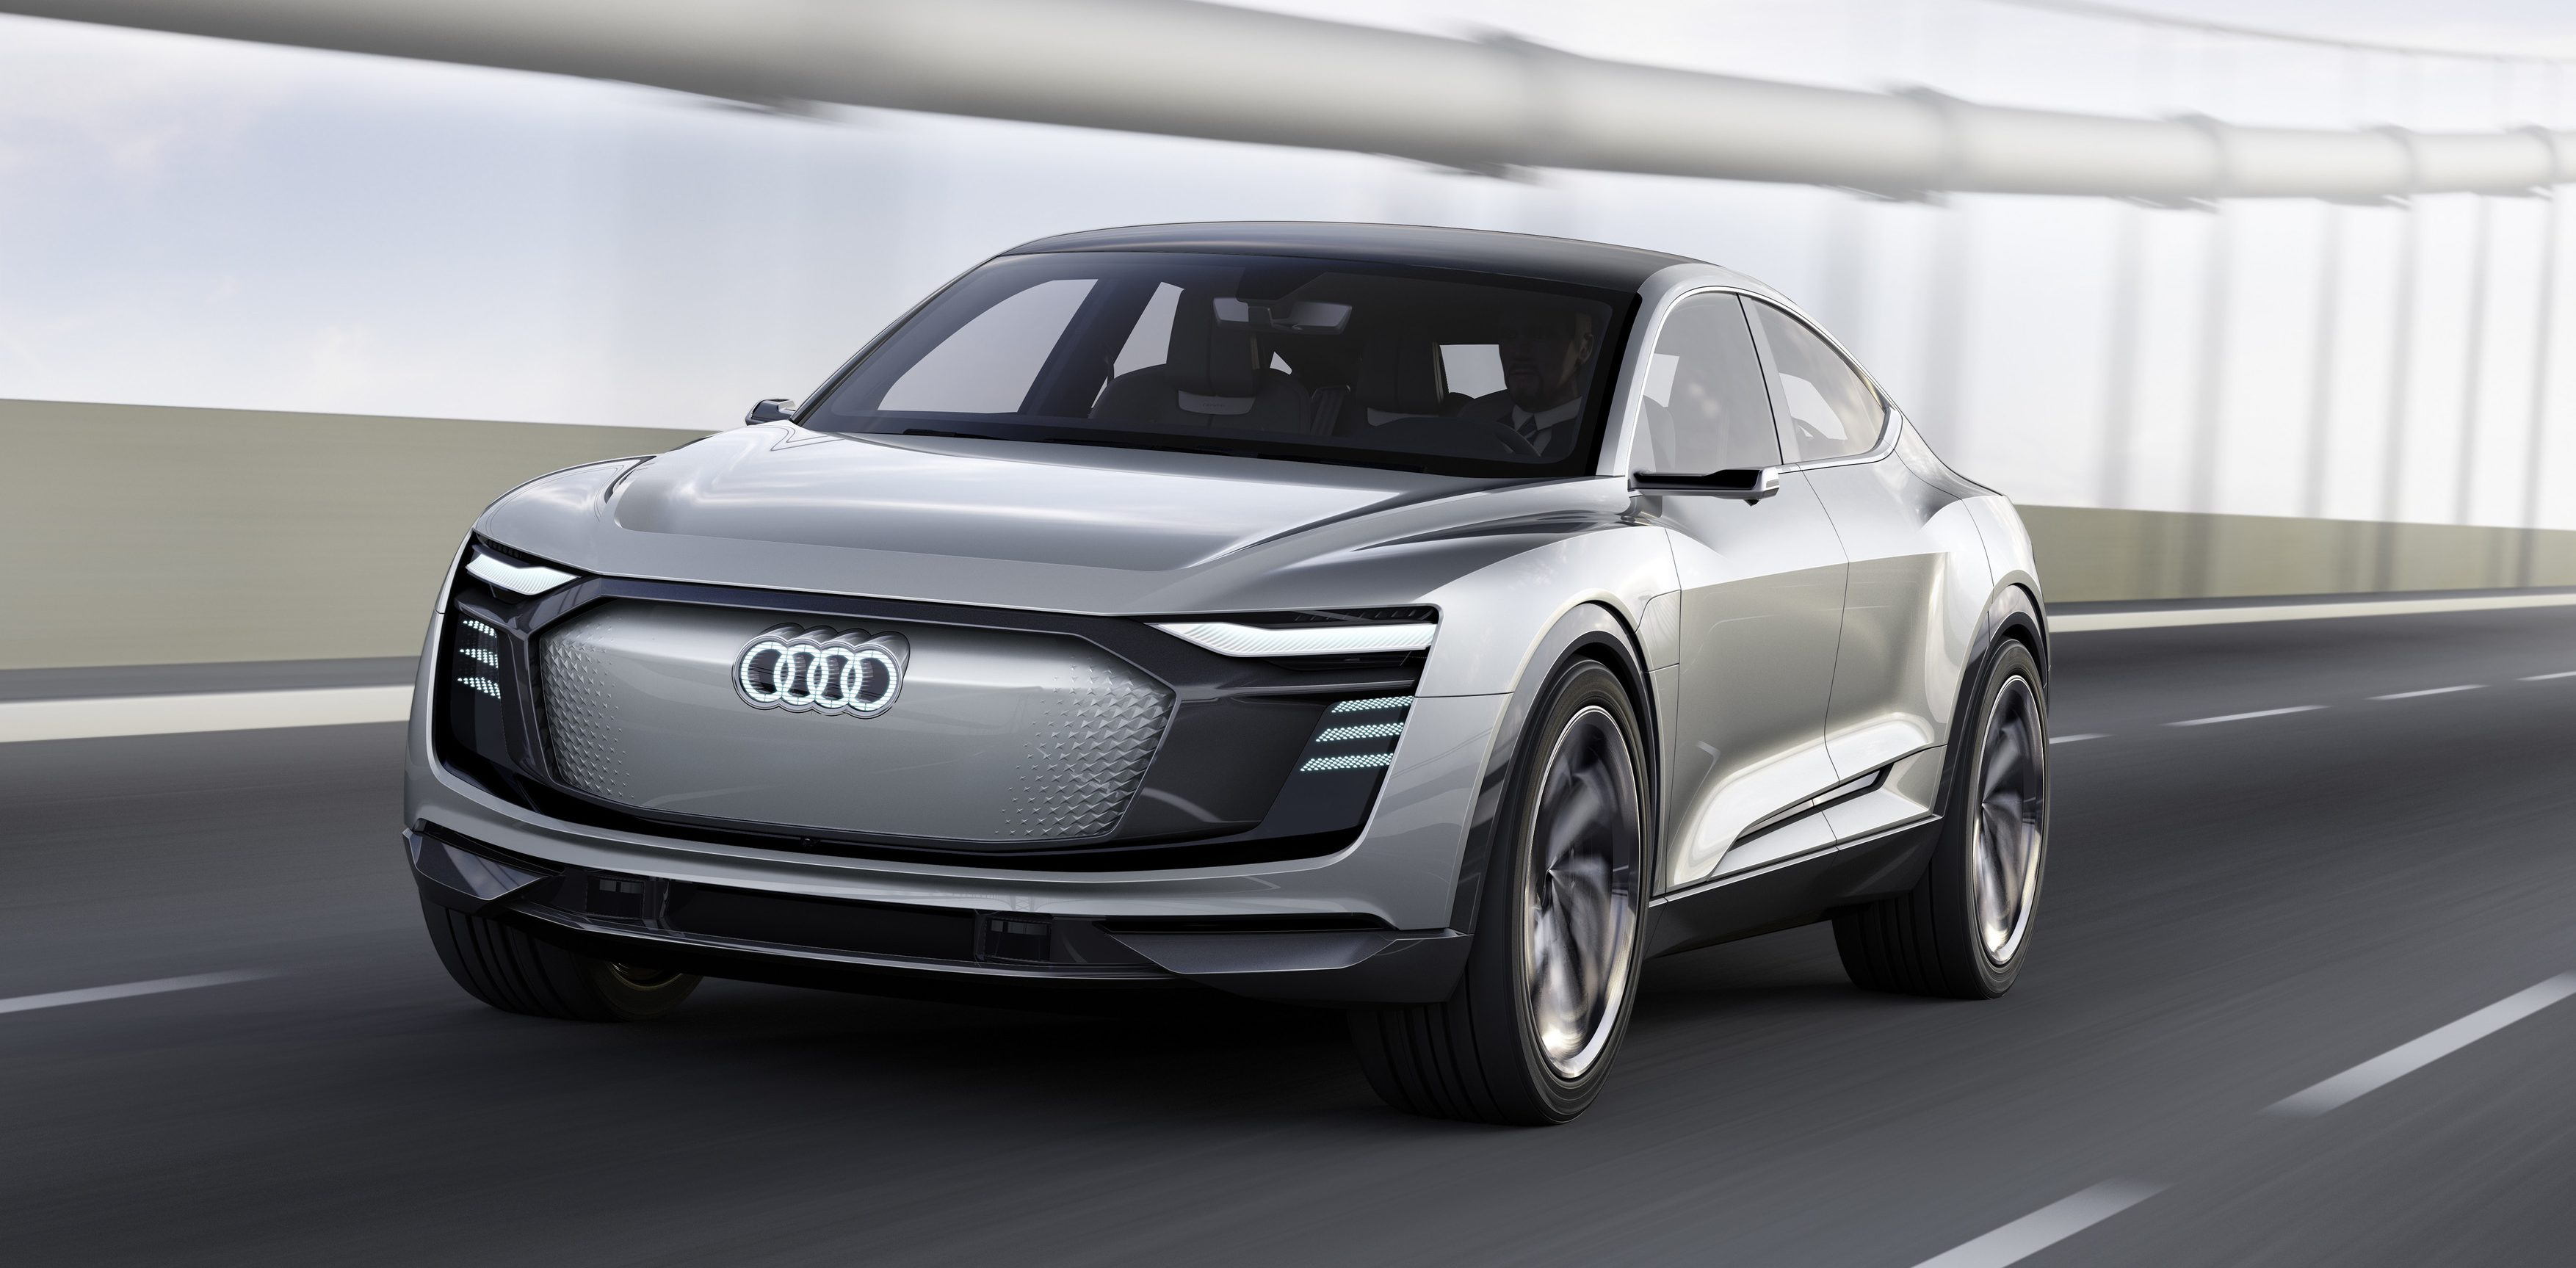 Audi will build electric cars in all factories worldwide, expanding from previous plans